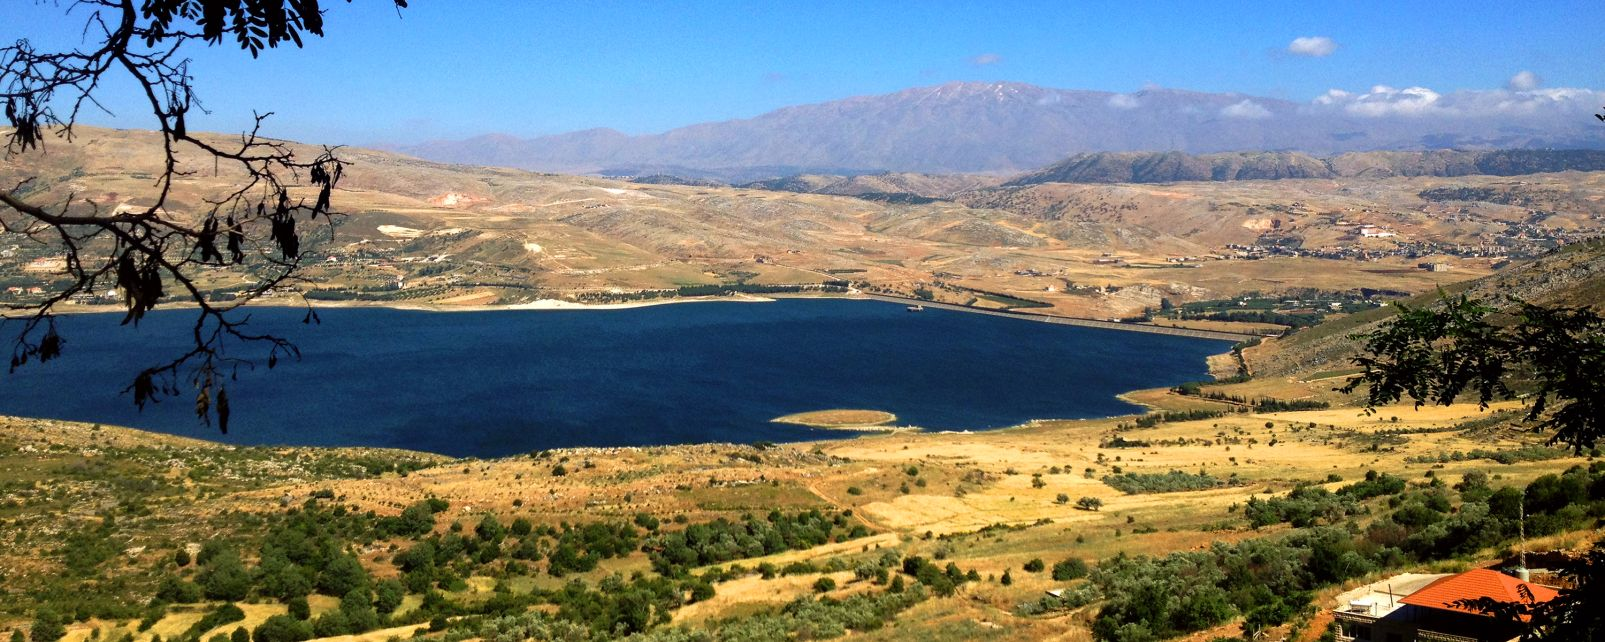 , Rivers and lakes, Landscapes, Lebanon